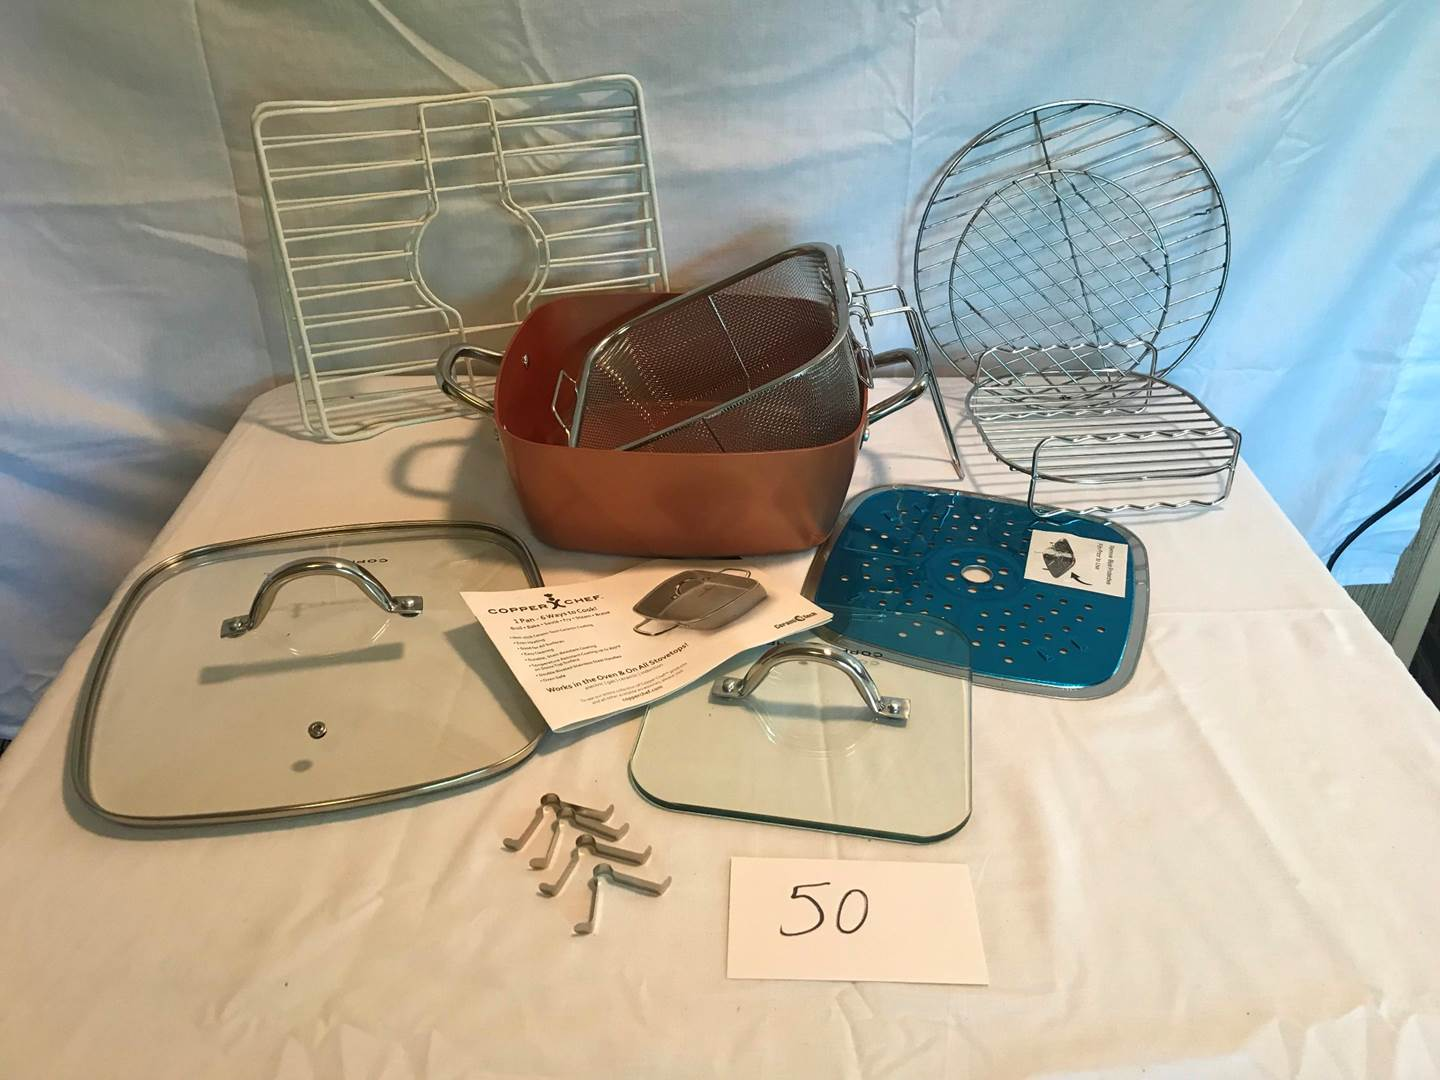 Lot # 50 - New Copper Chef pan, wire racks (main image)